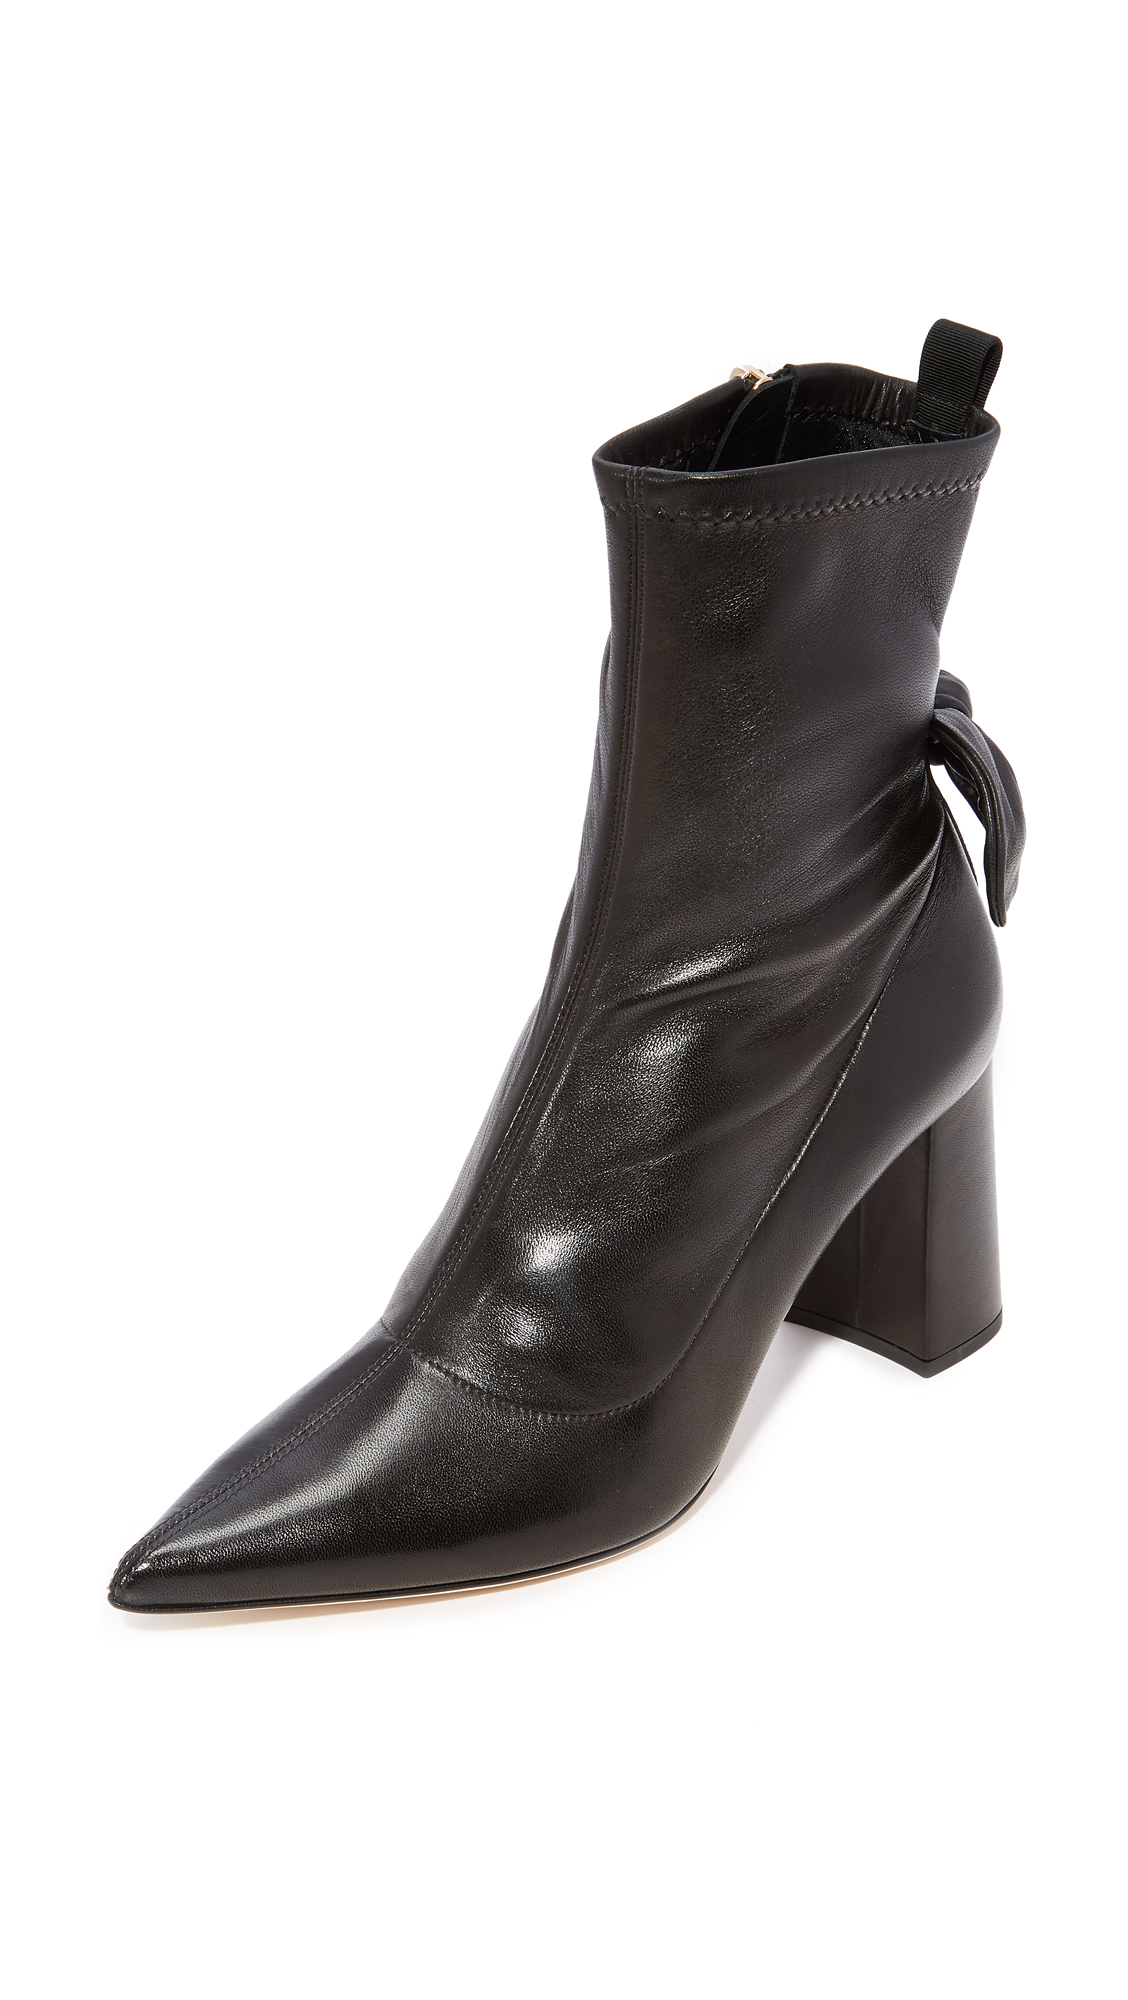 Frances Valentine Valerie Bow Booties - Black